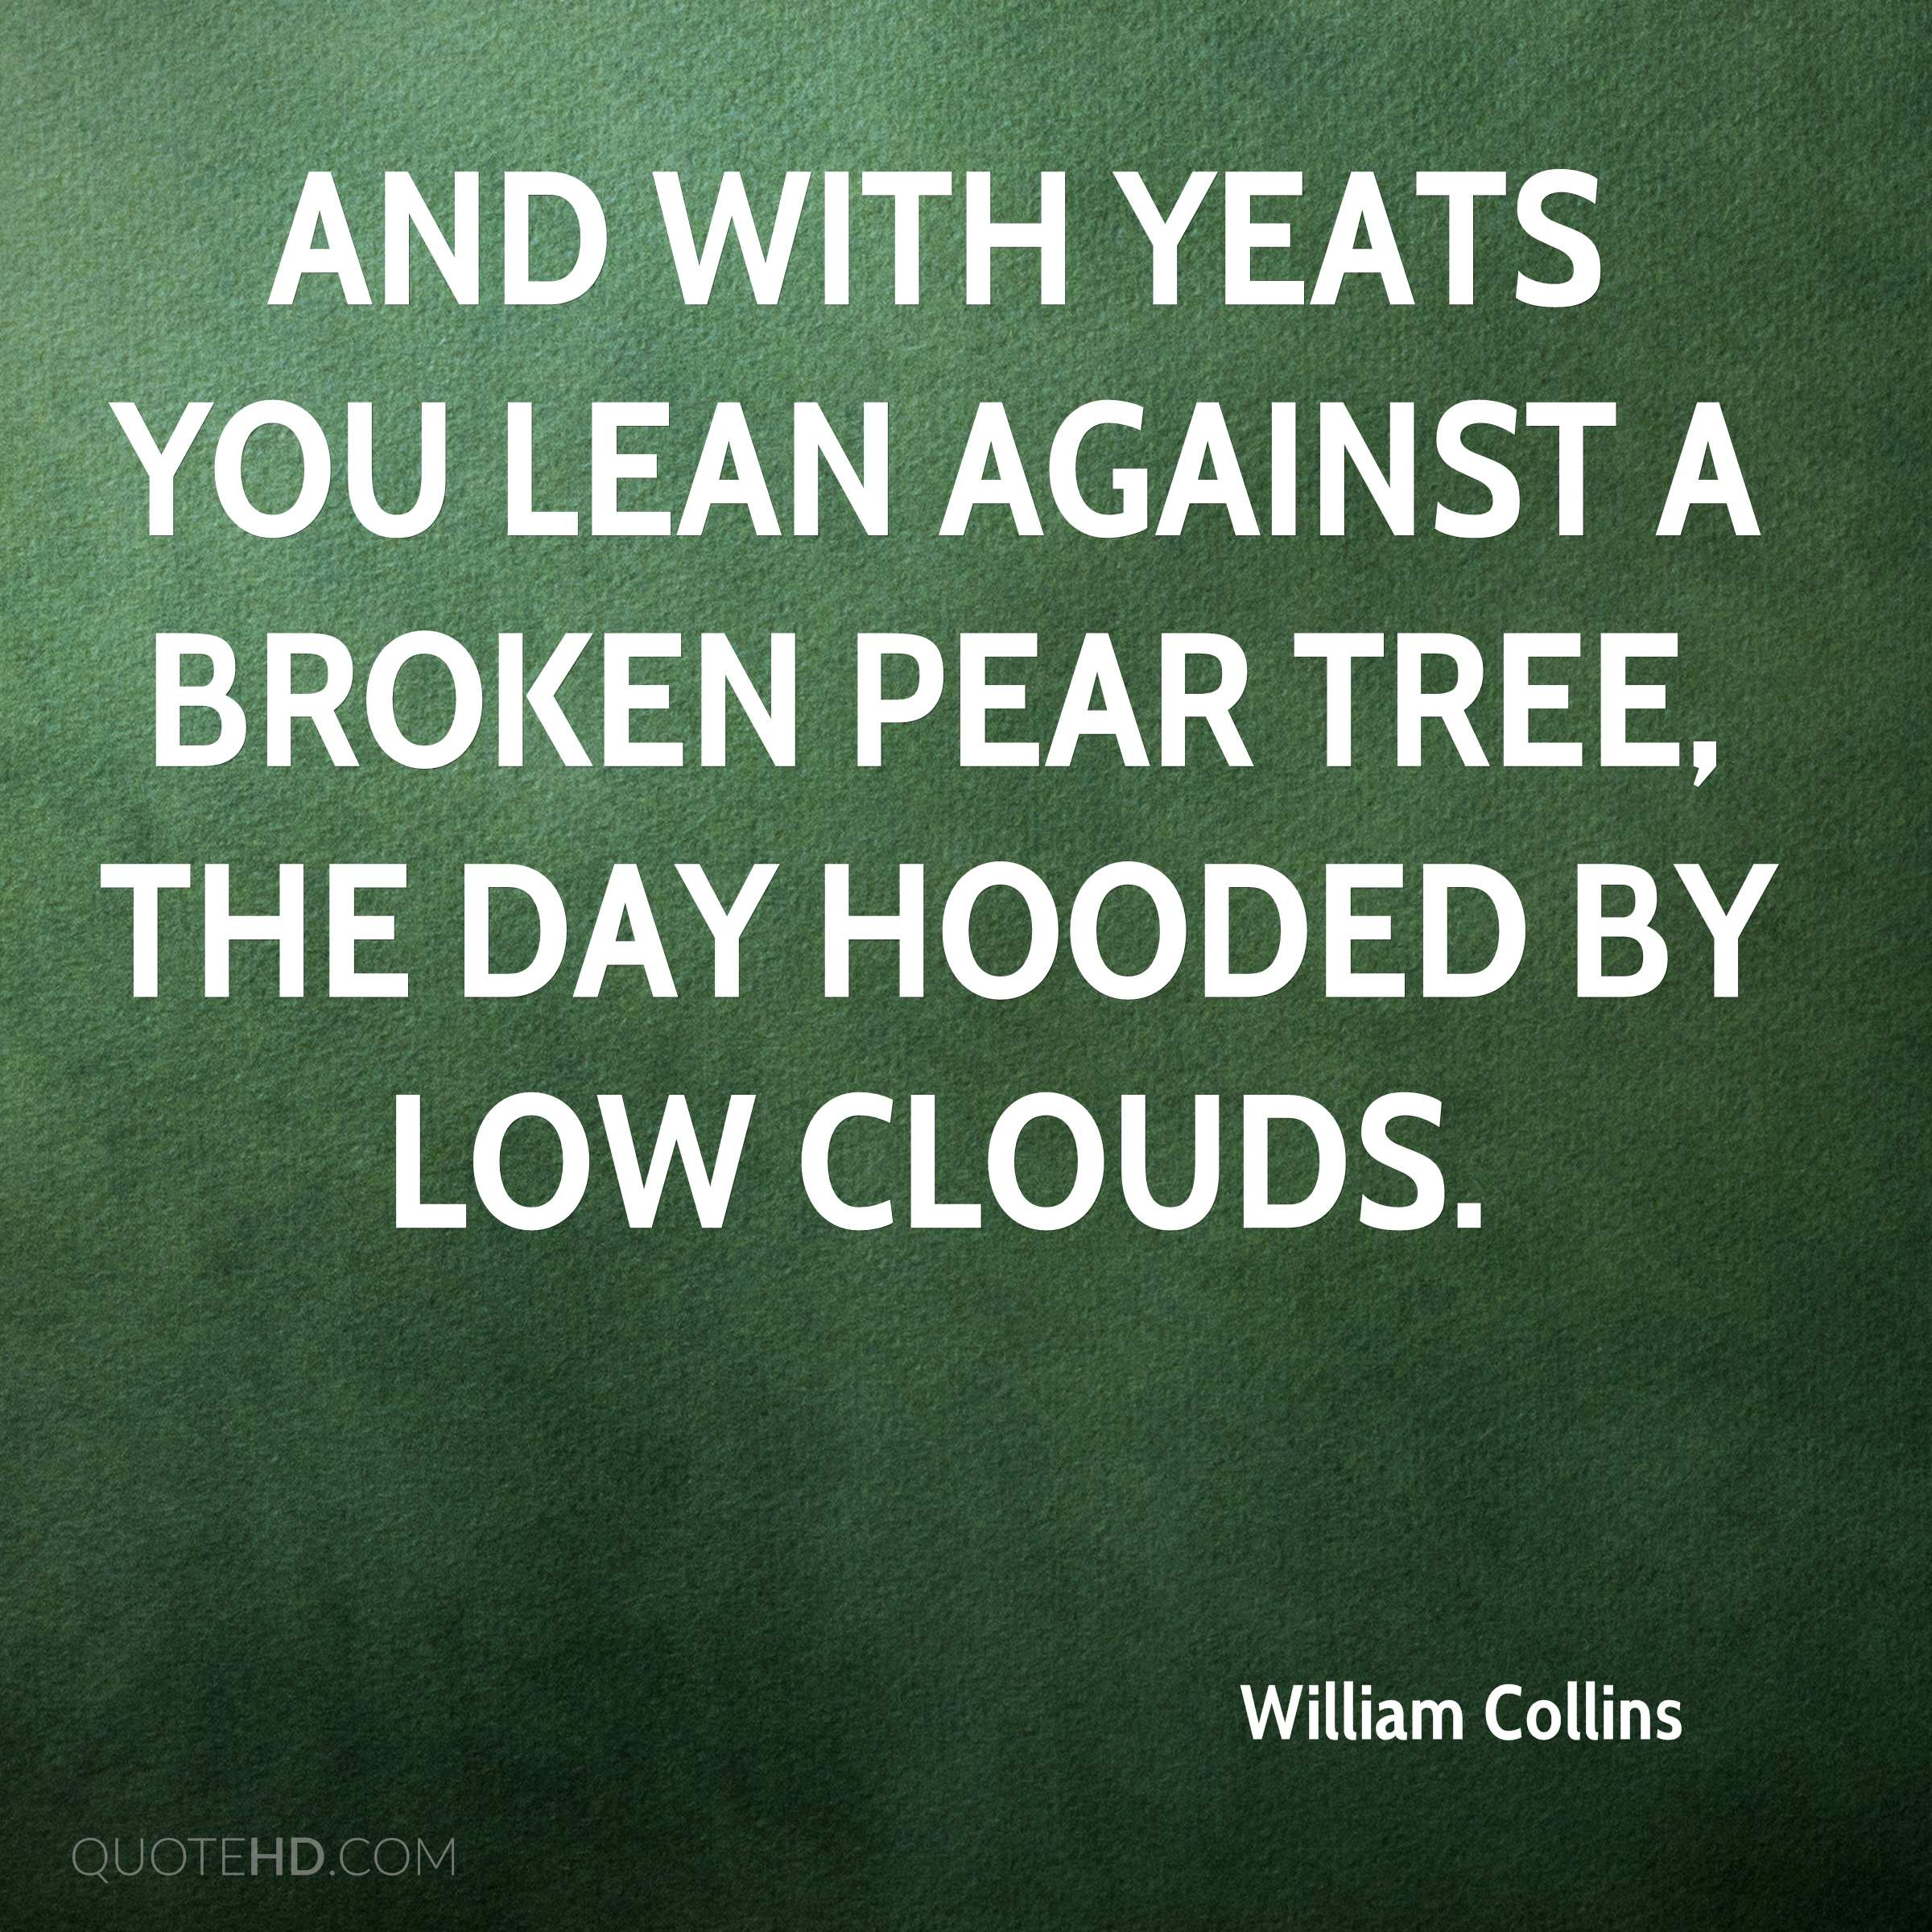 And with Yeats you lean against a broken pear tree, the day hooded by low clouds.